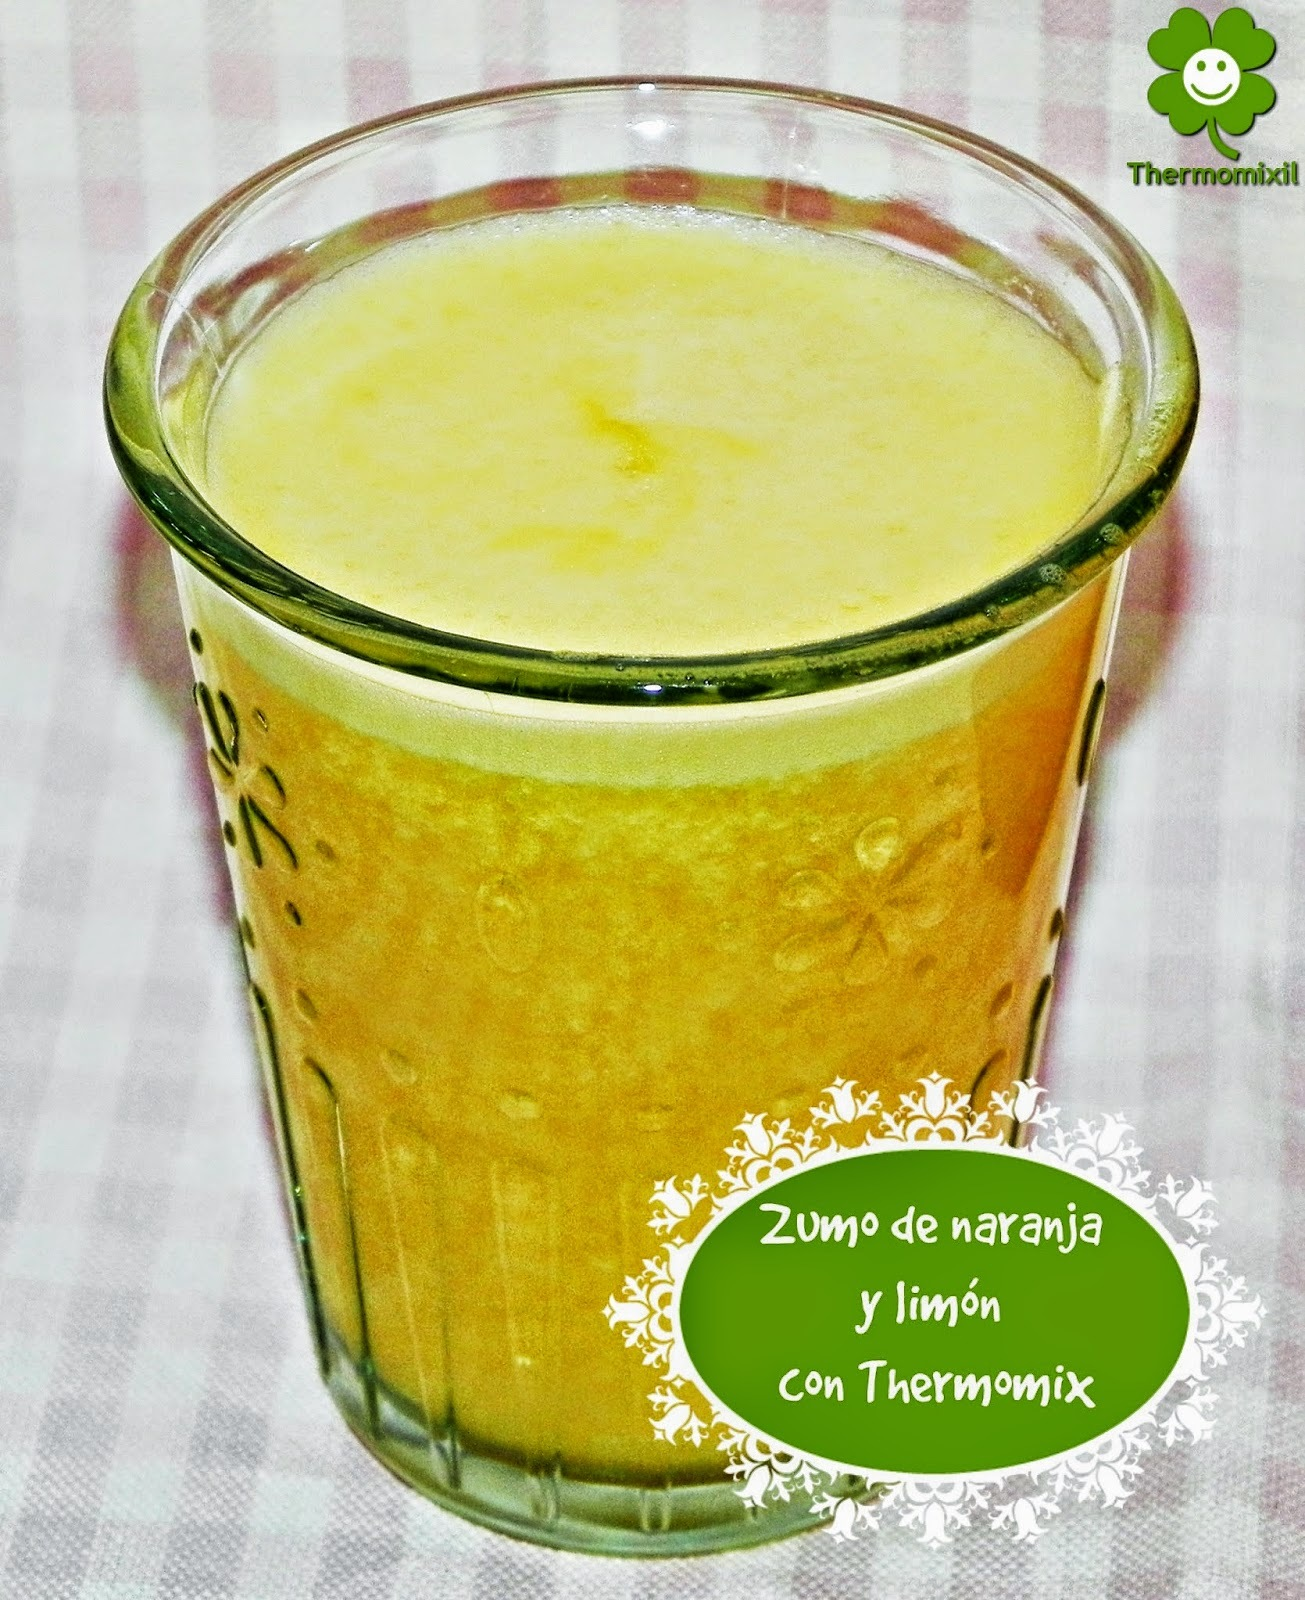 zumo limon thermomix